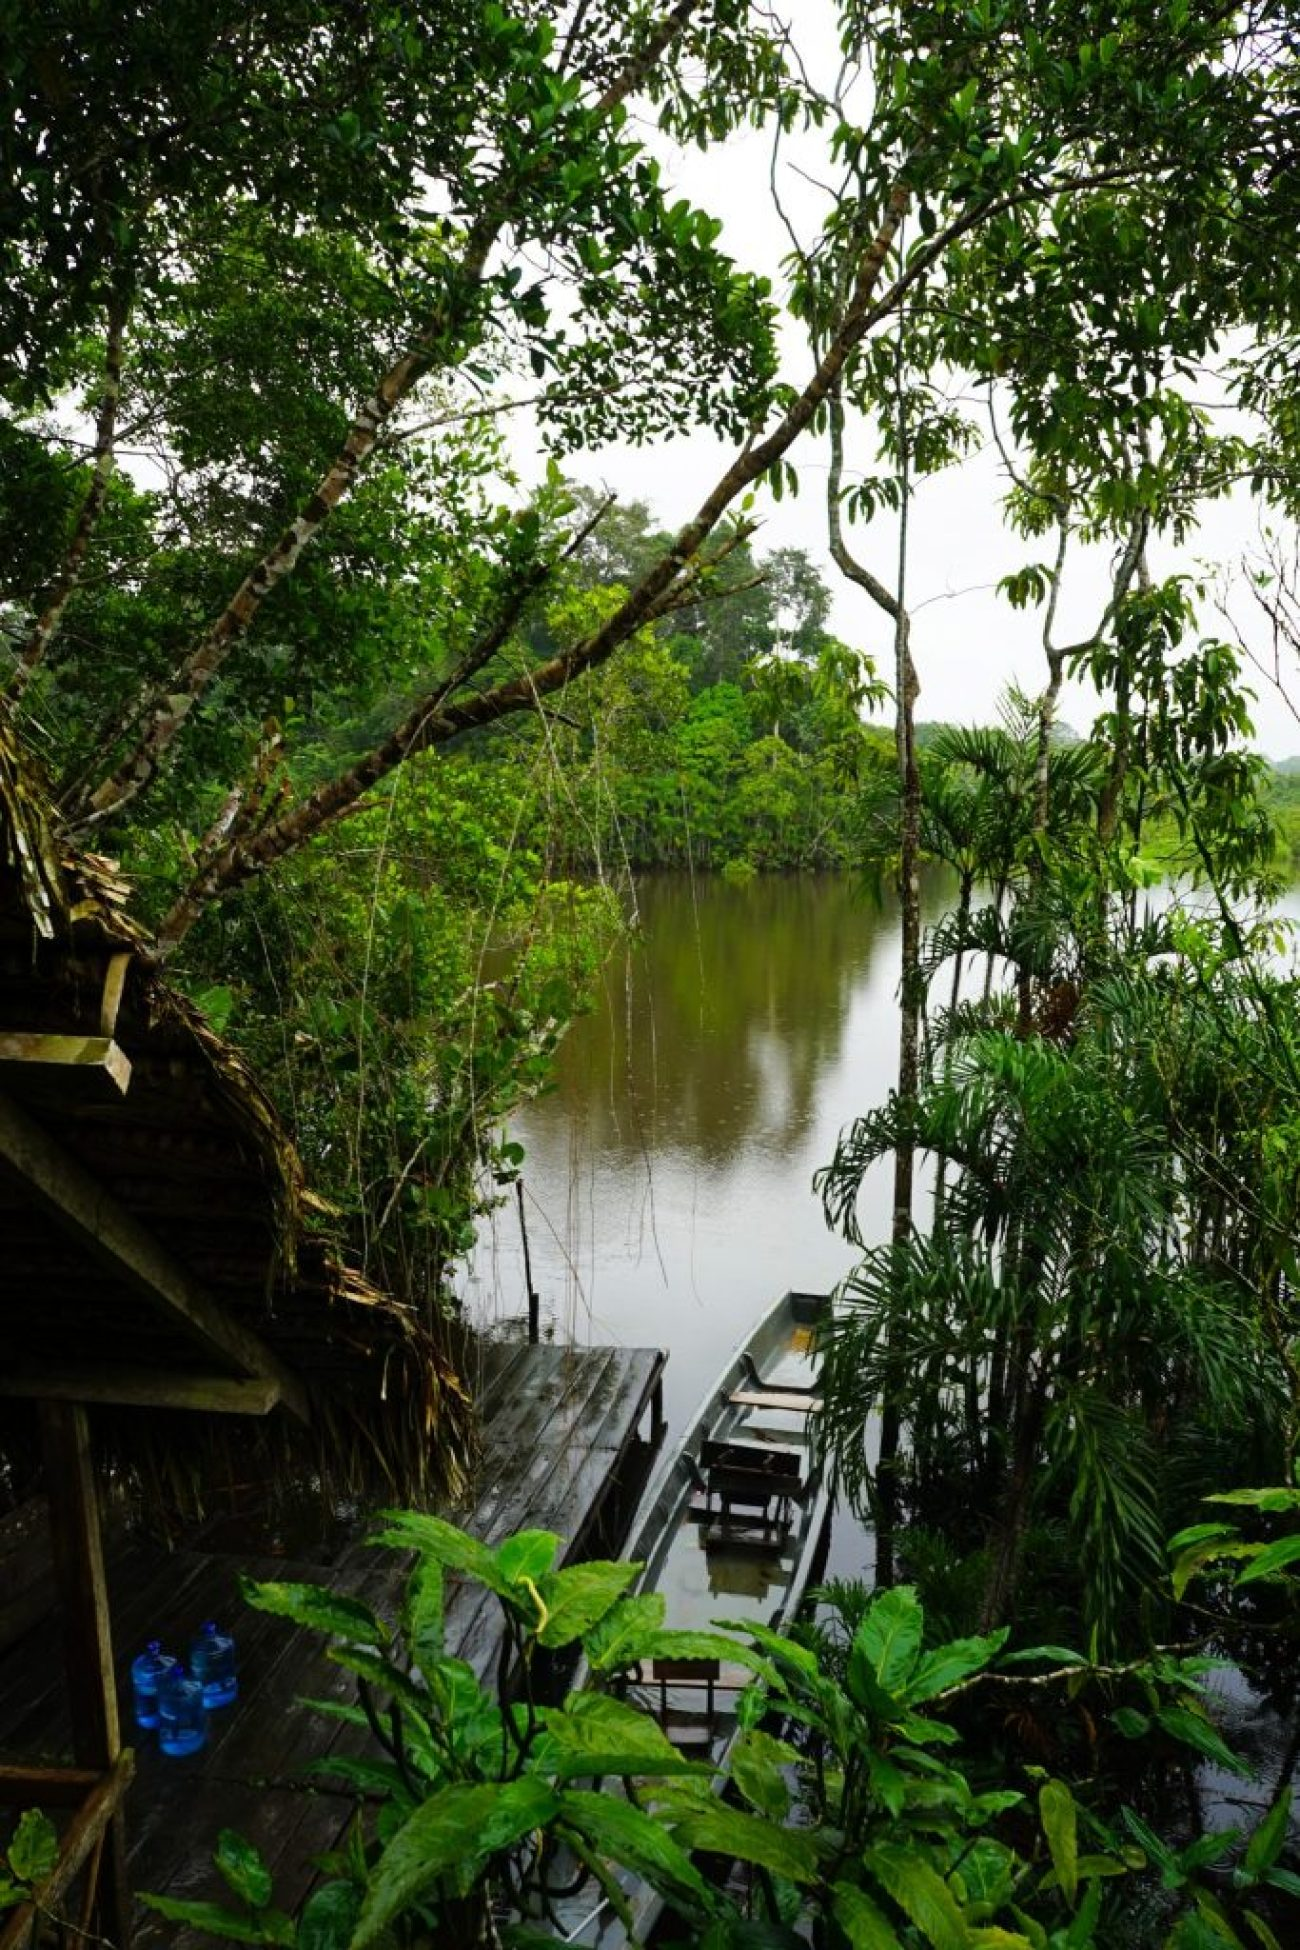 Sani Lodge Ecuador: A Amazon rainforest lodge in the Yasuni National Park